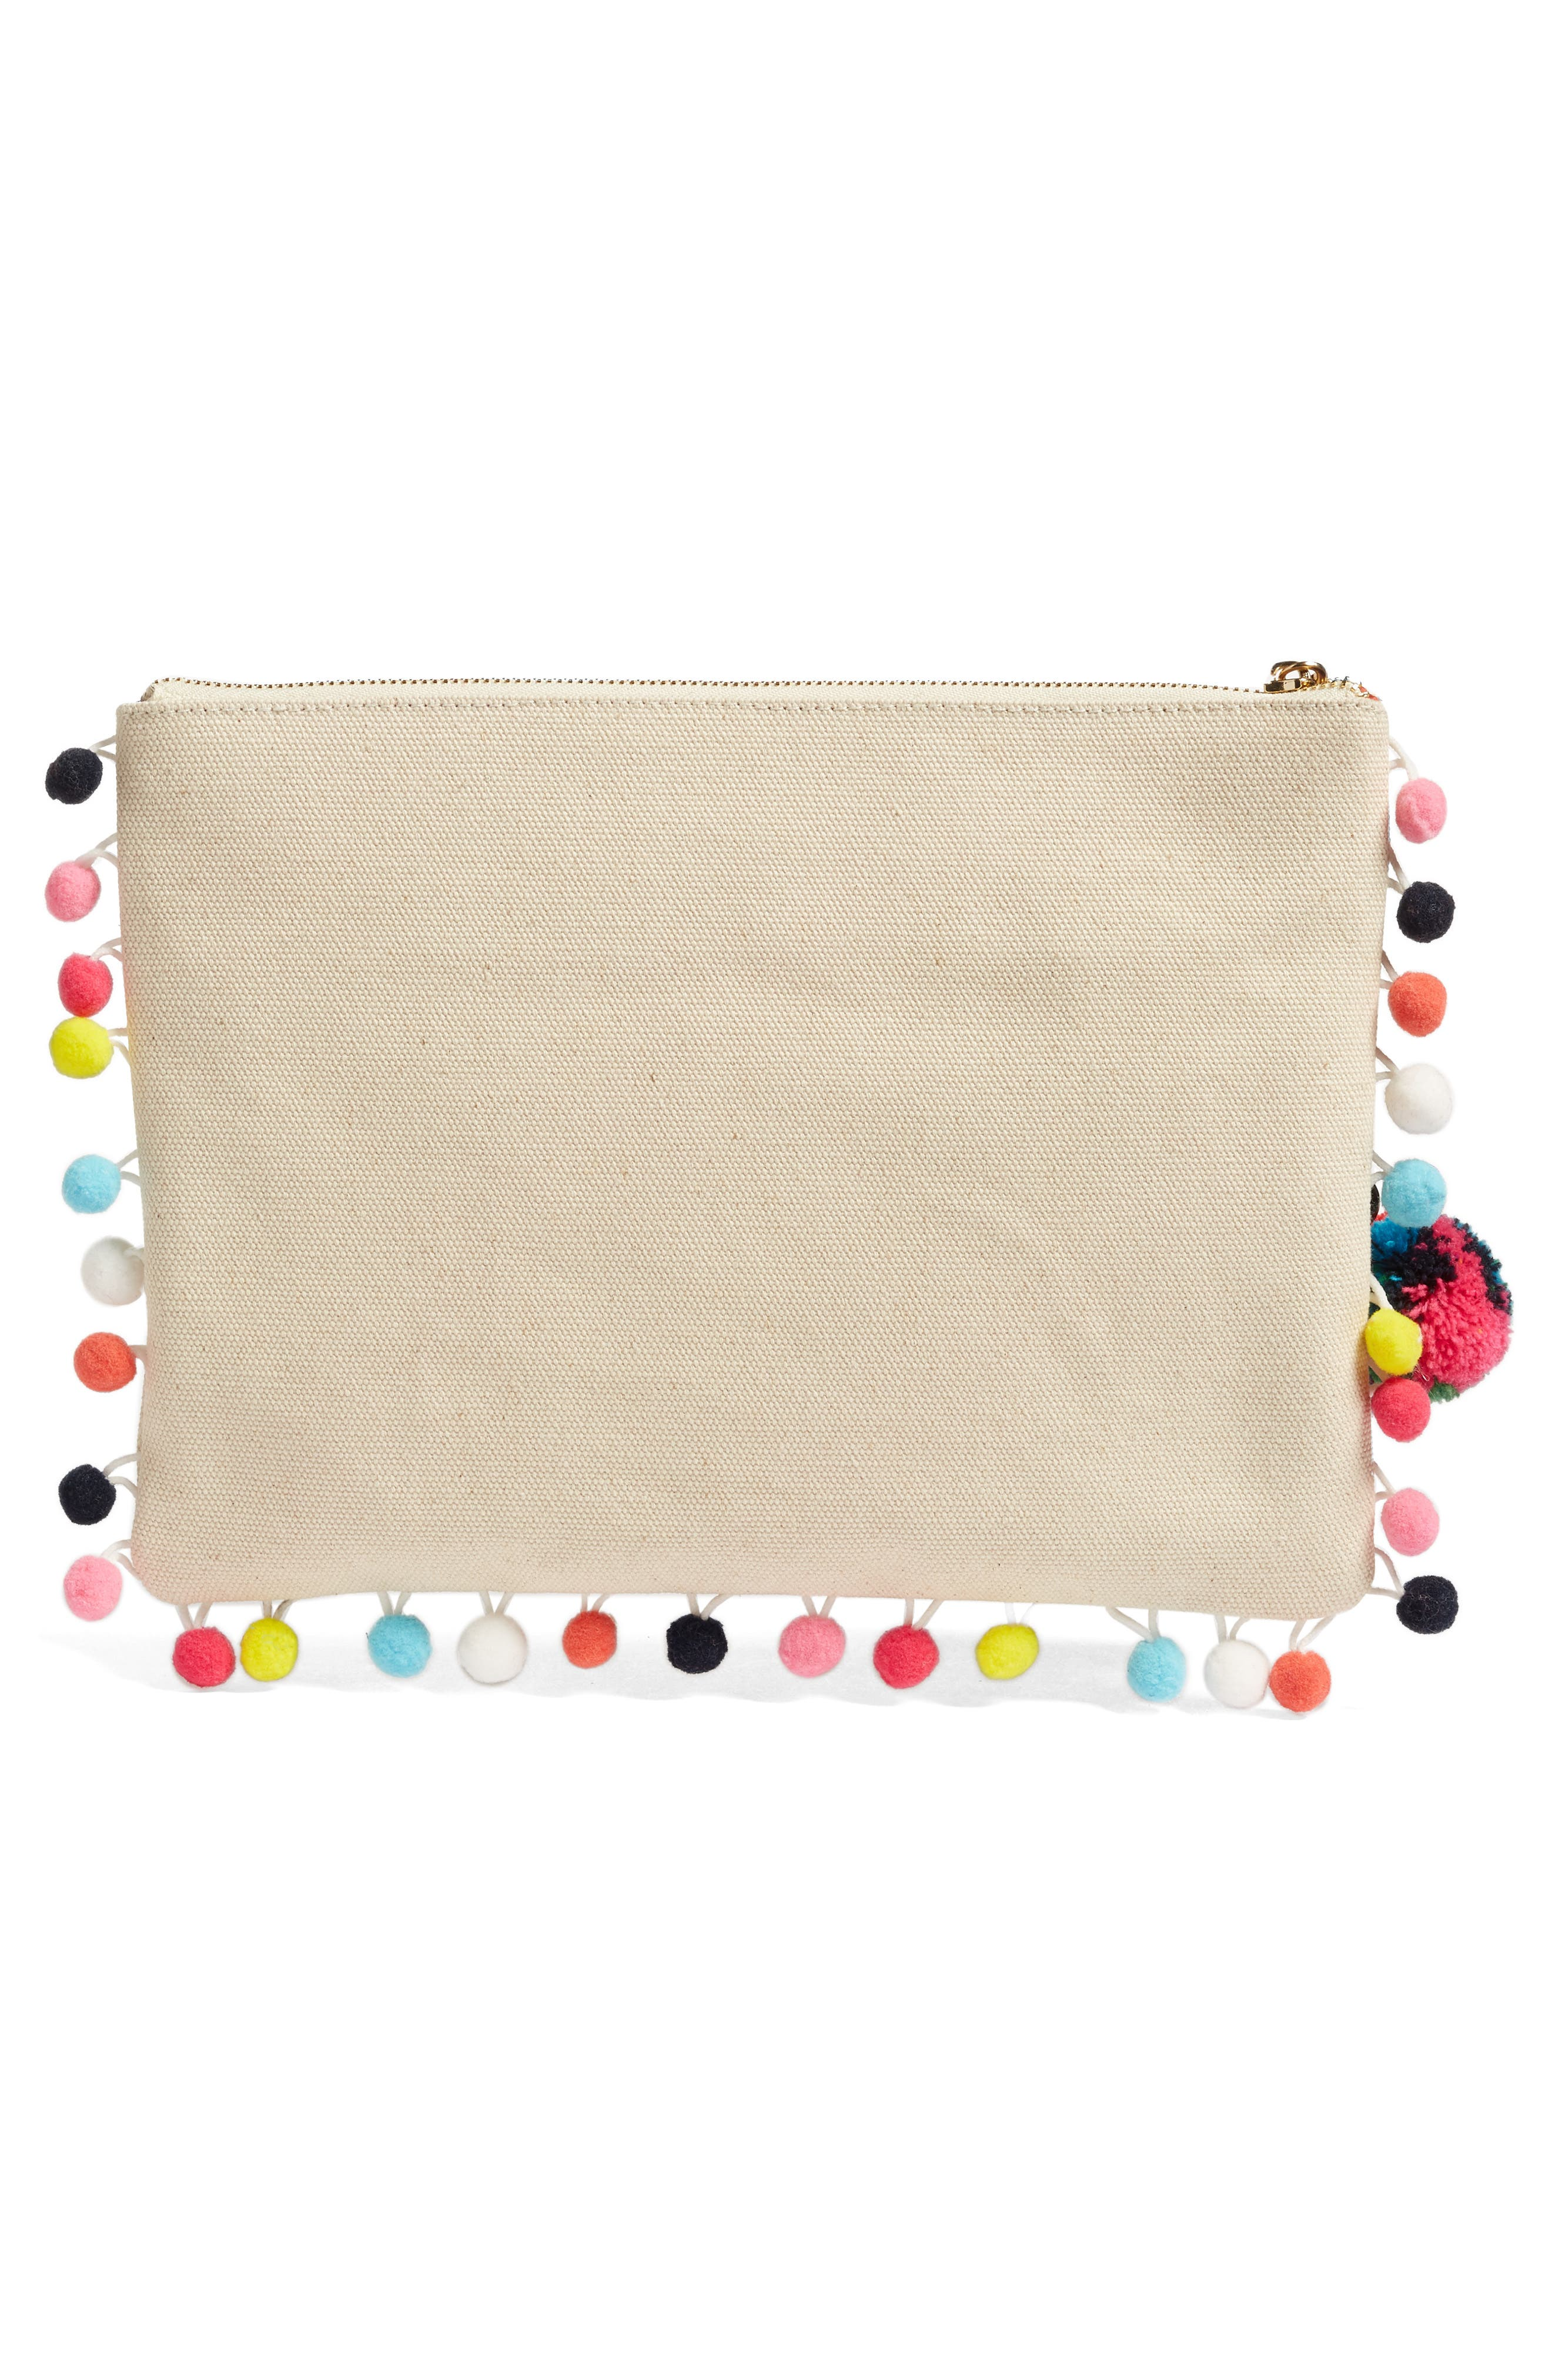 Alternate Image 3  - Steven by Steve Madden Embroidered Clutch